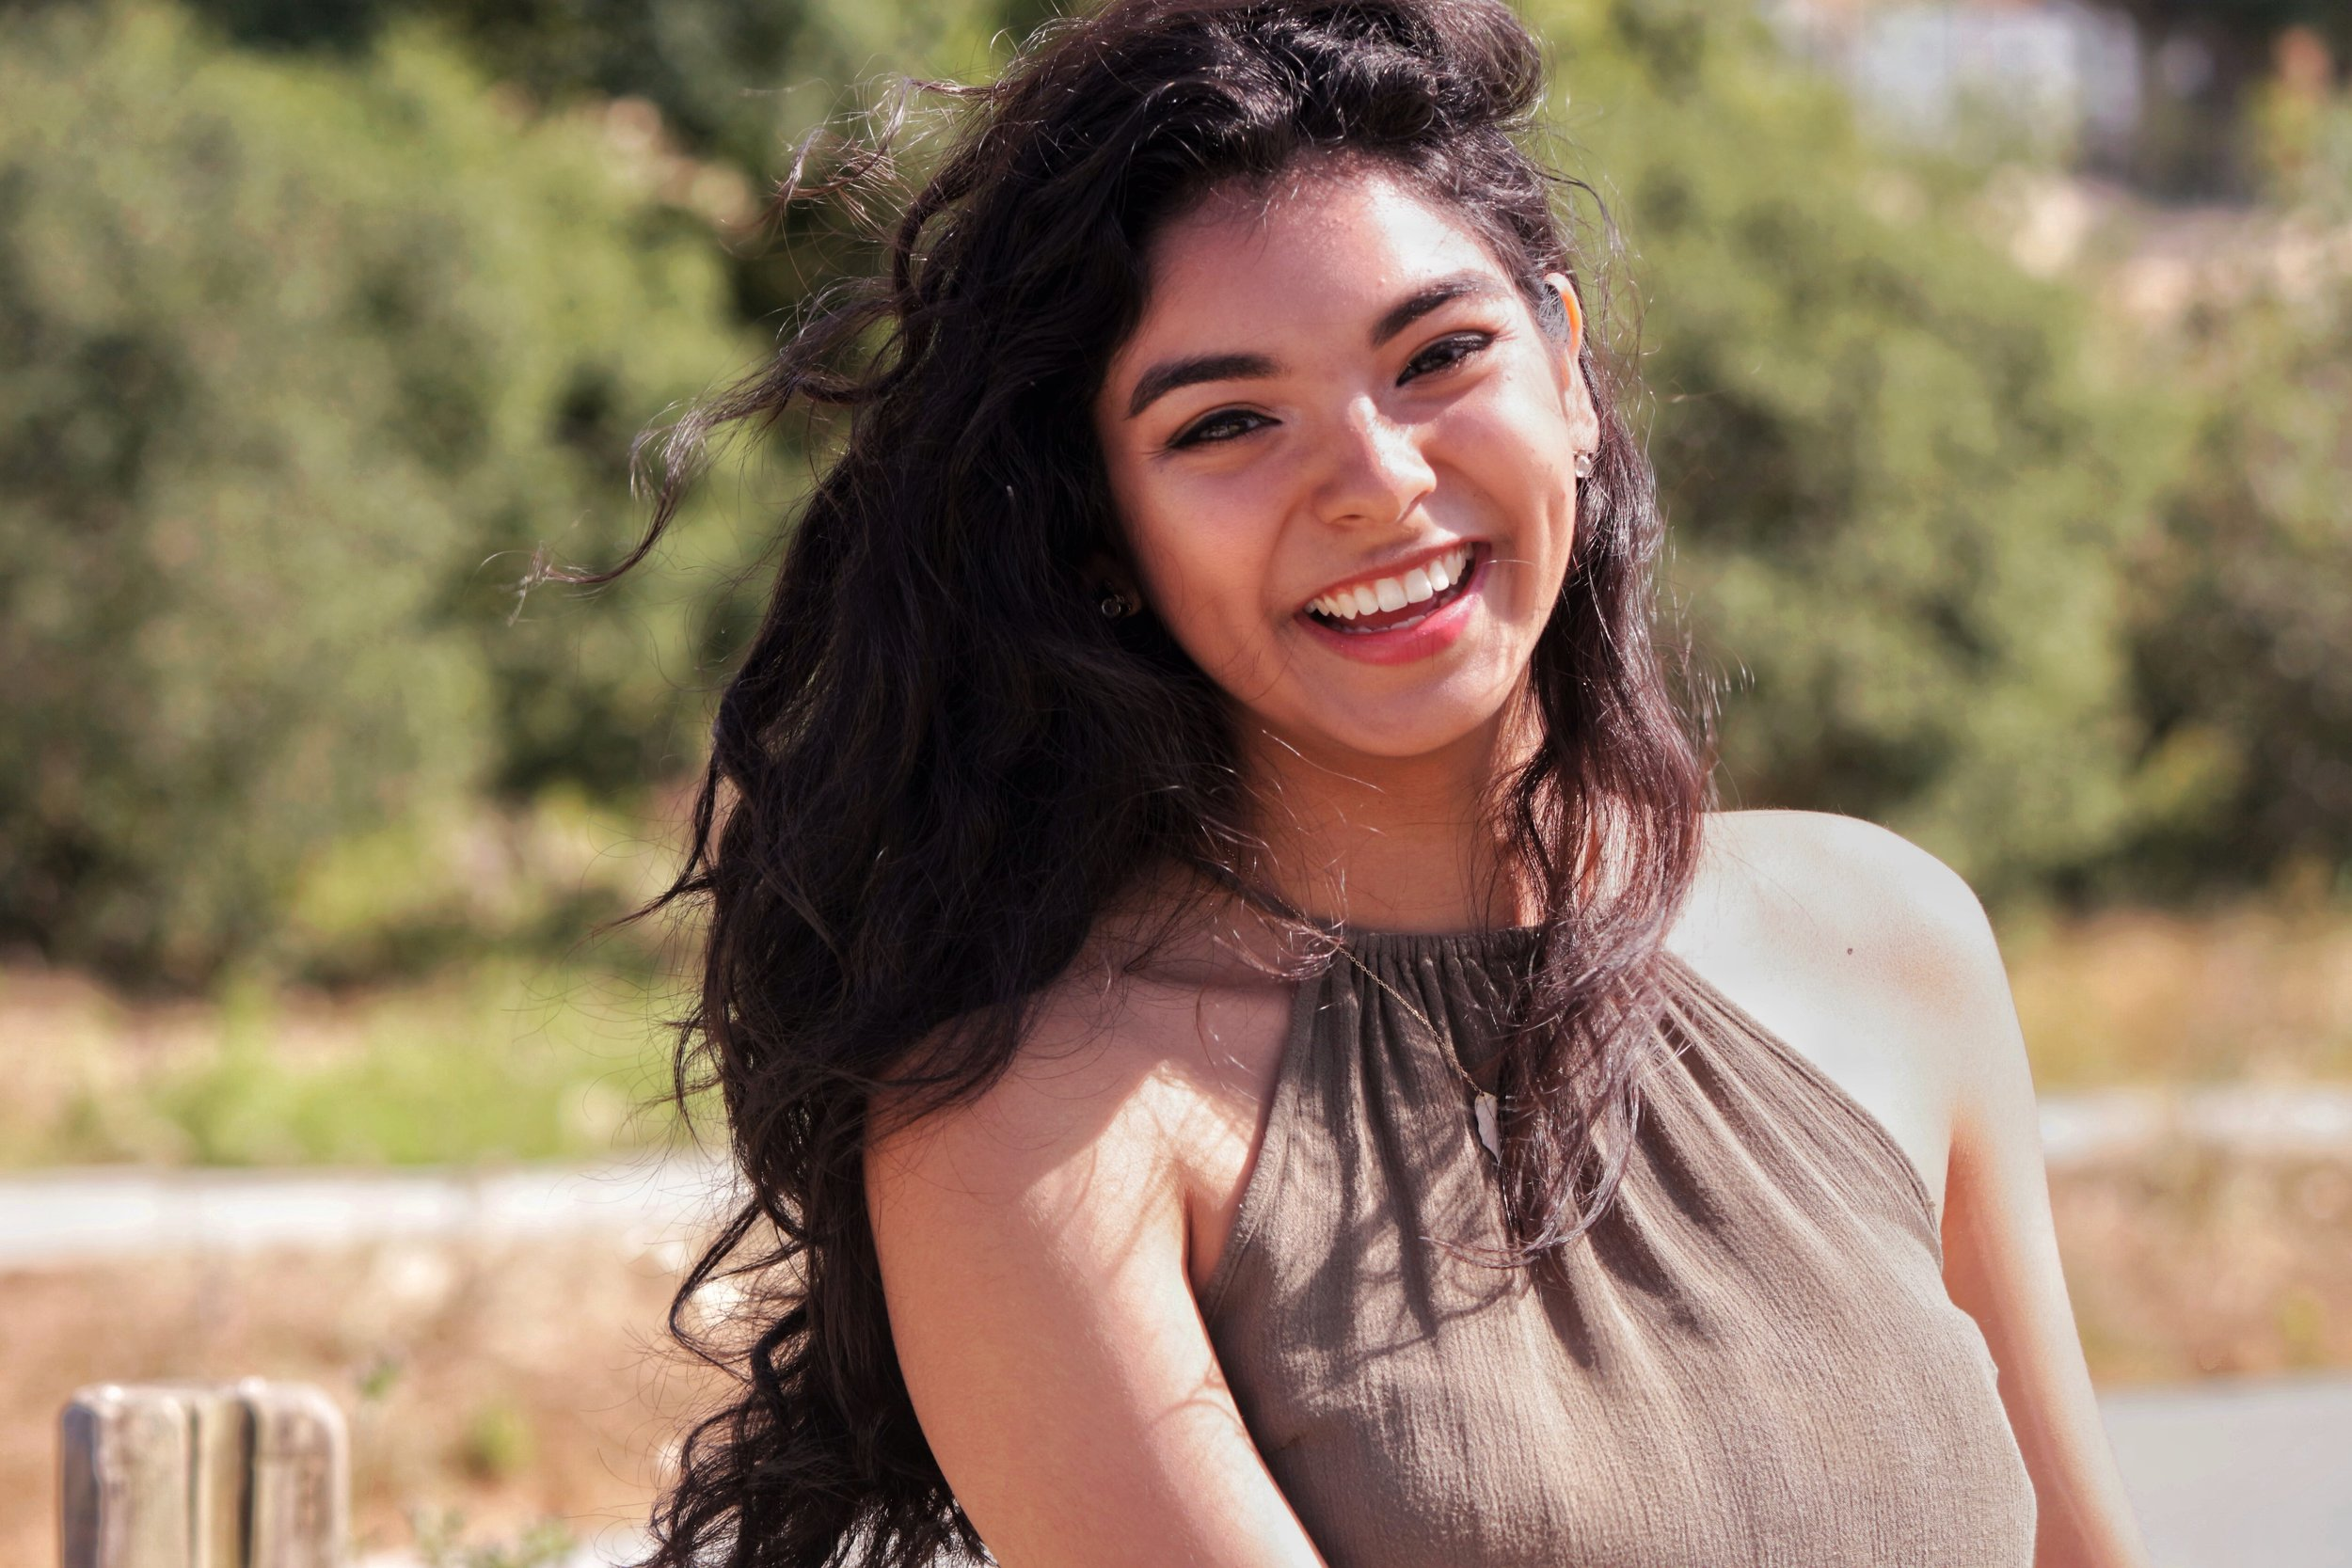 Melanie Lopez   18, studying CPE at Cal Poly (SLO)